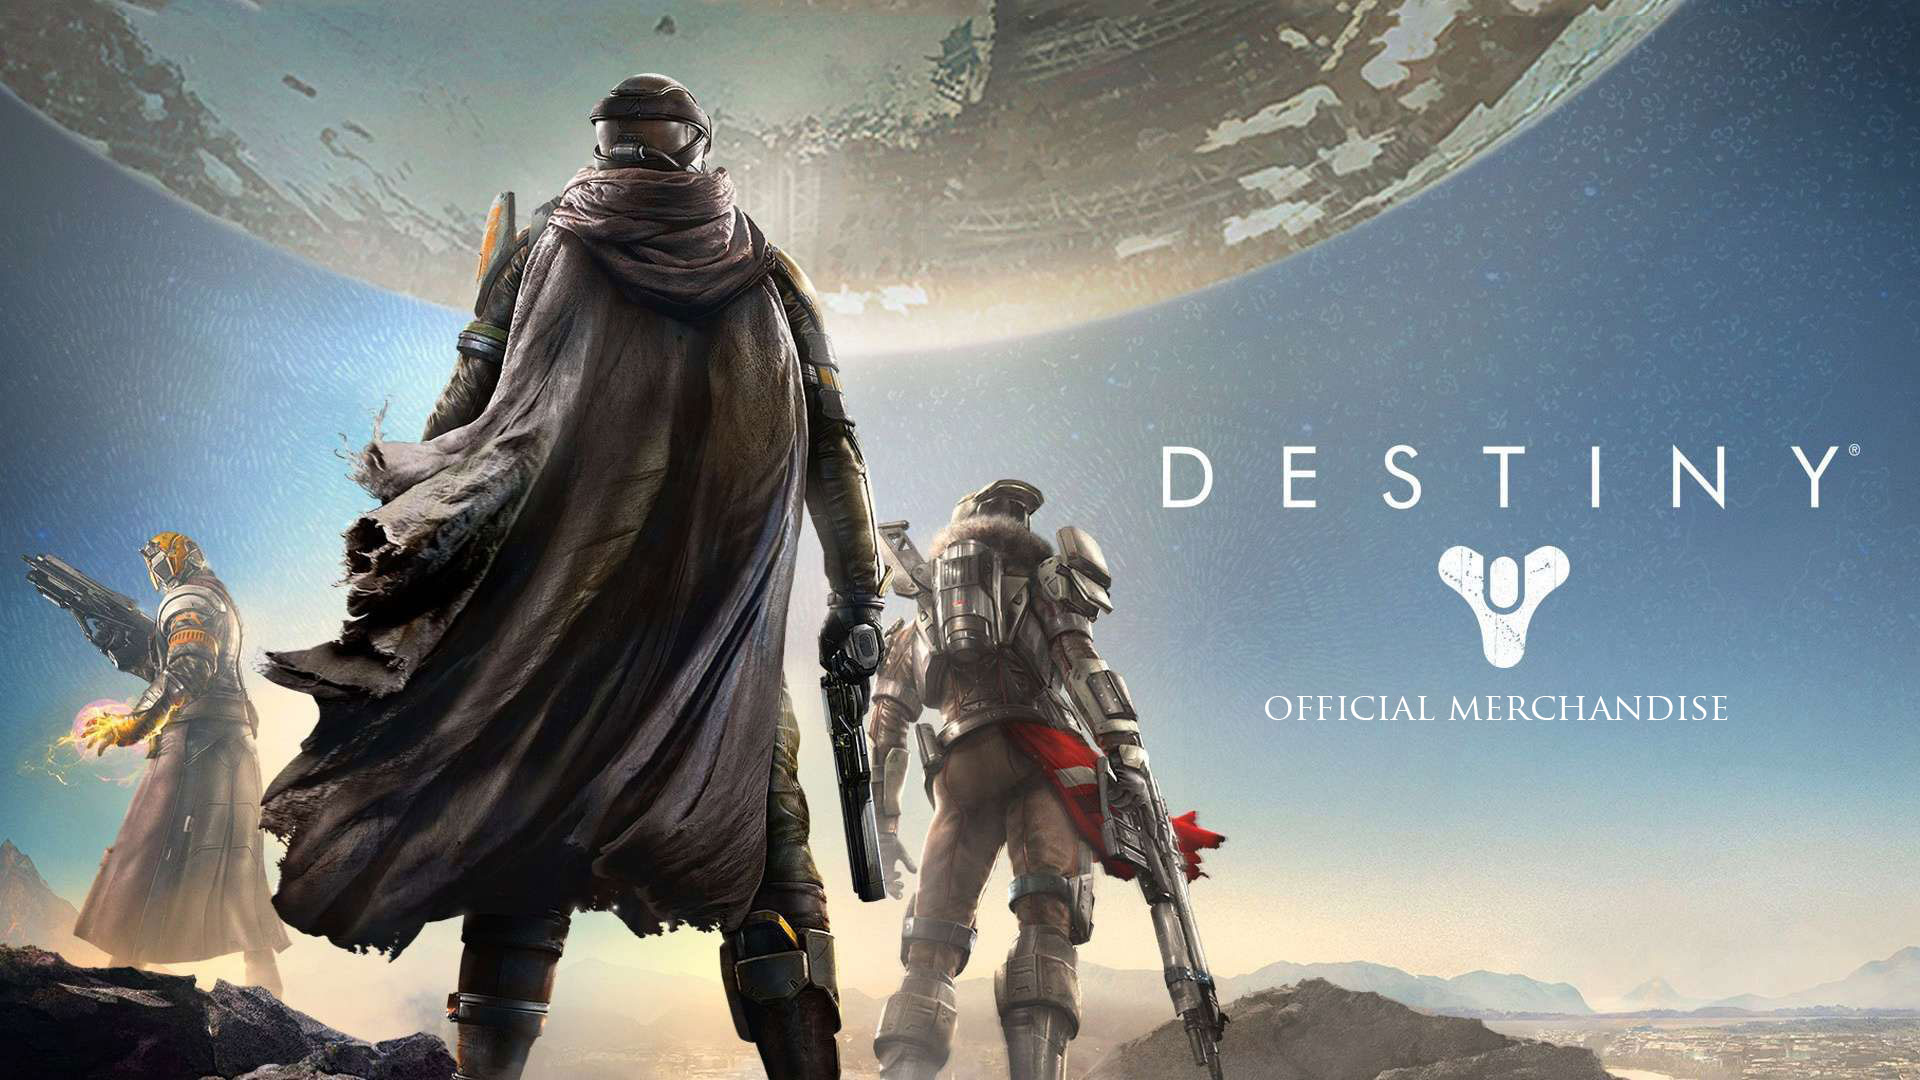 Destiny Game Official Poster  545.32 Kb